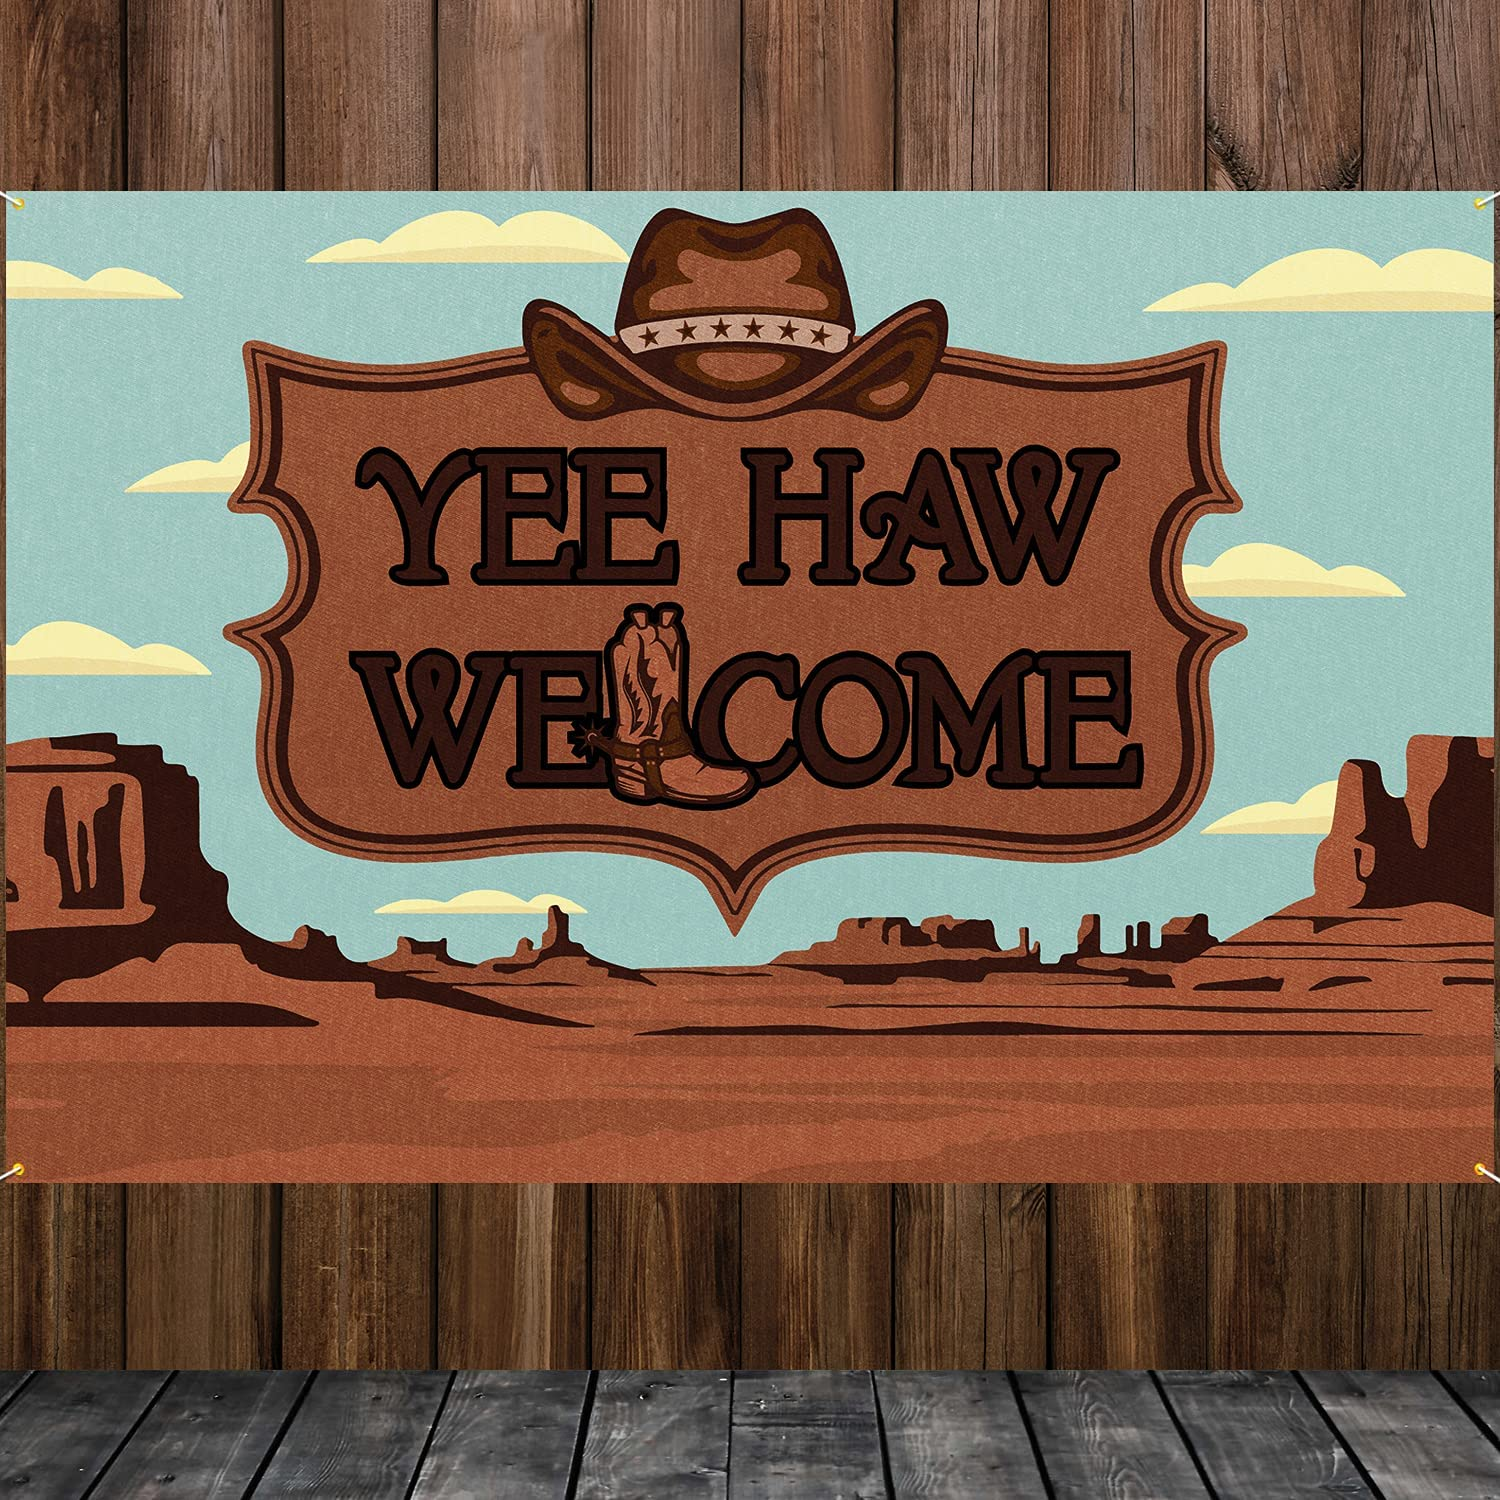 HAMIGAR Yee Haw Welcome Banner Backdrop Western Themed Birthday Decorations Party Supplies for Cowboy or Cowgirl 3.9 x 5.9ft (Brown)